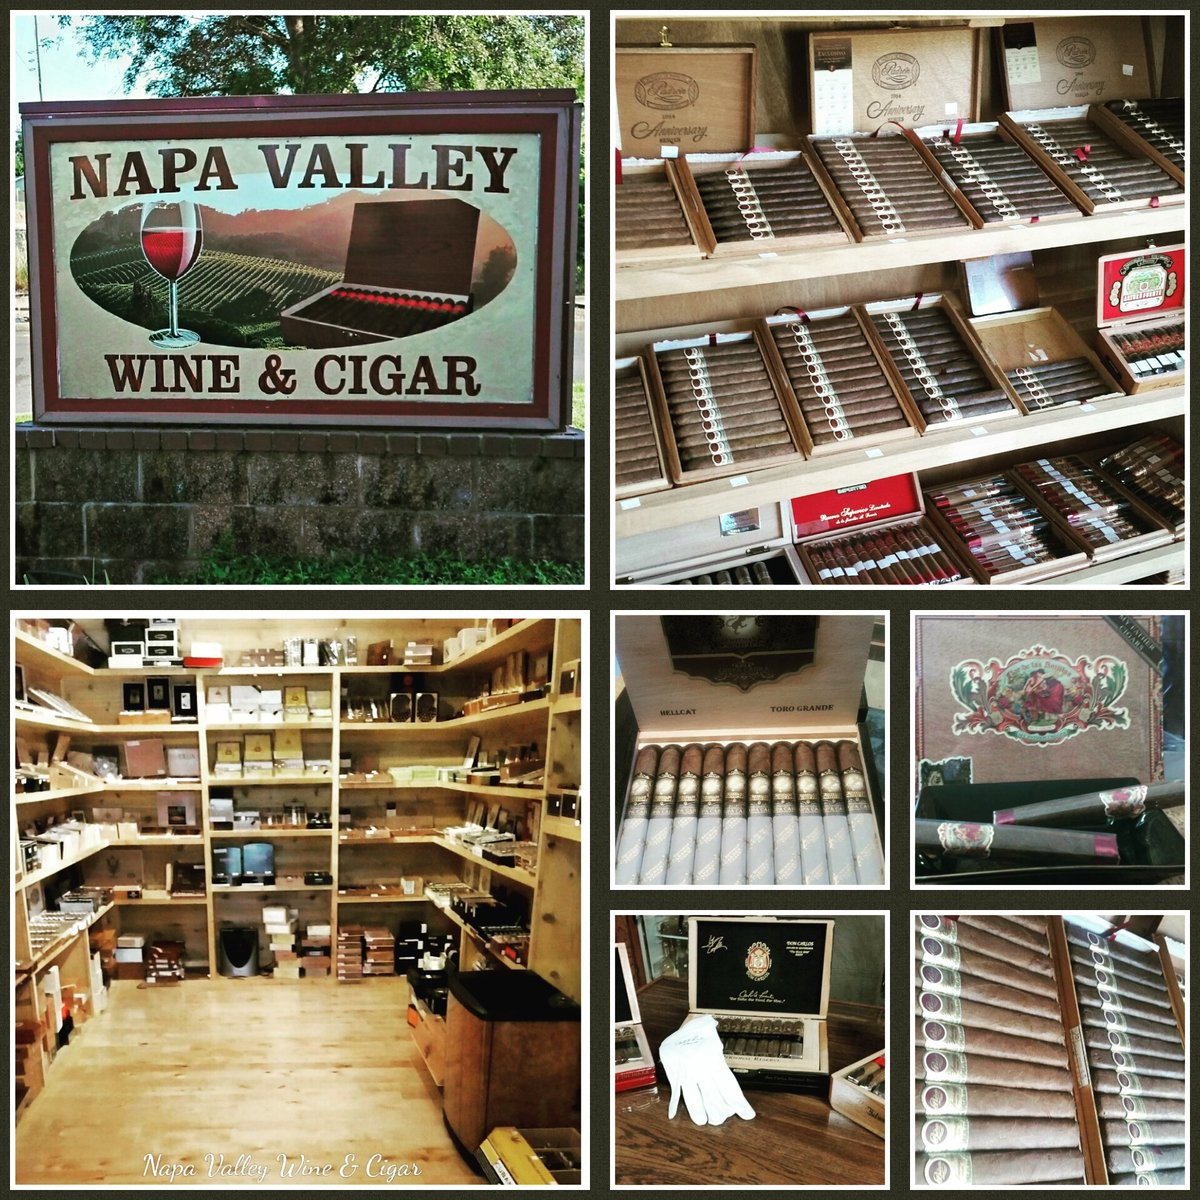 If you're in #NapaValley this weekend we're open all wknd and #Easter Sunday 10-7 #wine #cigars #napacigars https://t.co/AWEjQ7jTki